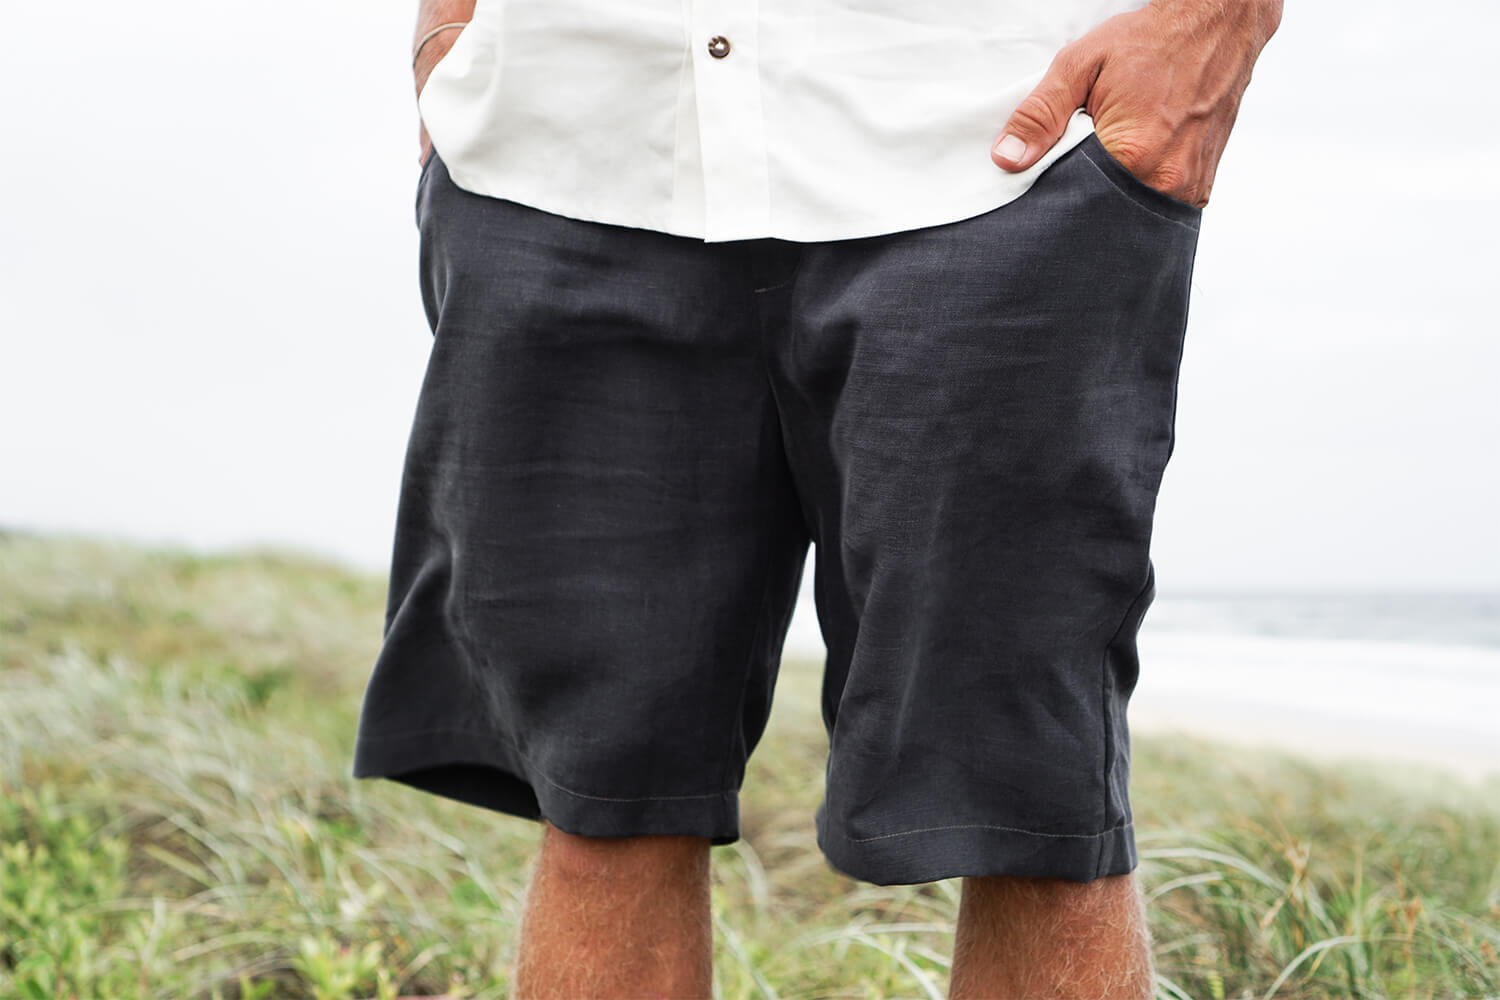 Tasi Travels' Men's Charcoal Roamer Shorts are handmade from sustainable Tencel